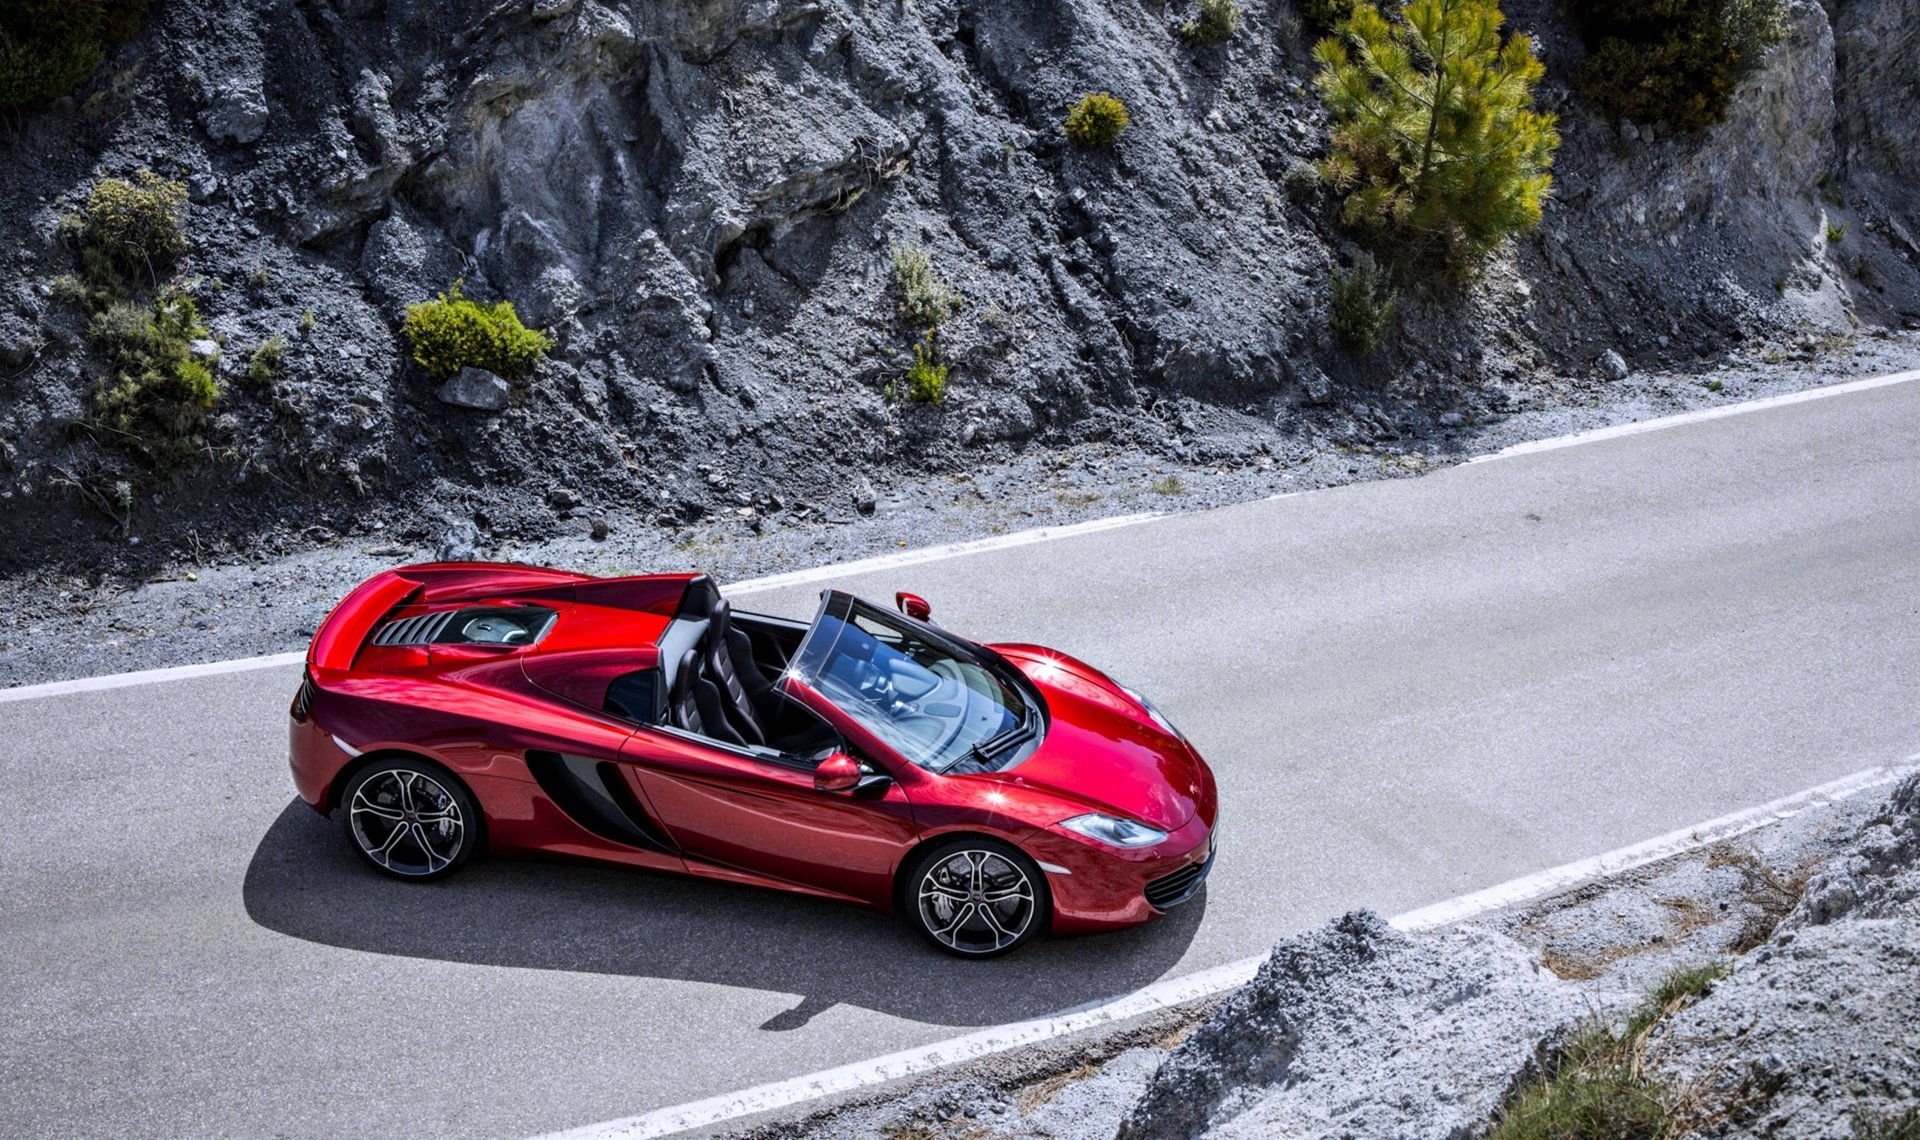 Vehicles - McLaren MP4-12C Spider  Car Supercar McLaren Red Car Vehicle McLaren 12C McLaren MP4-12C Wallpaper